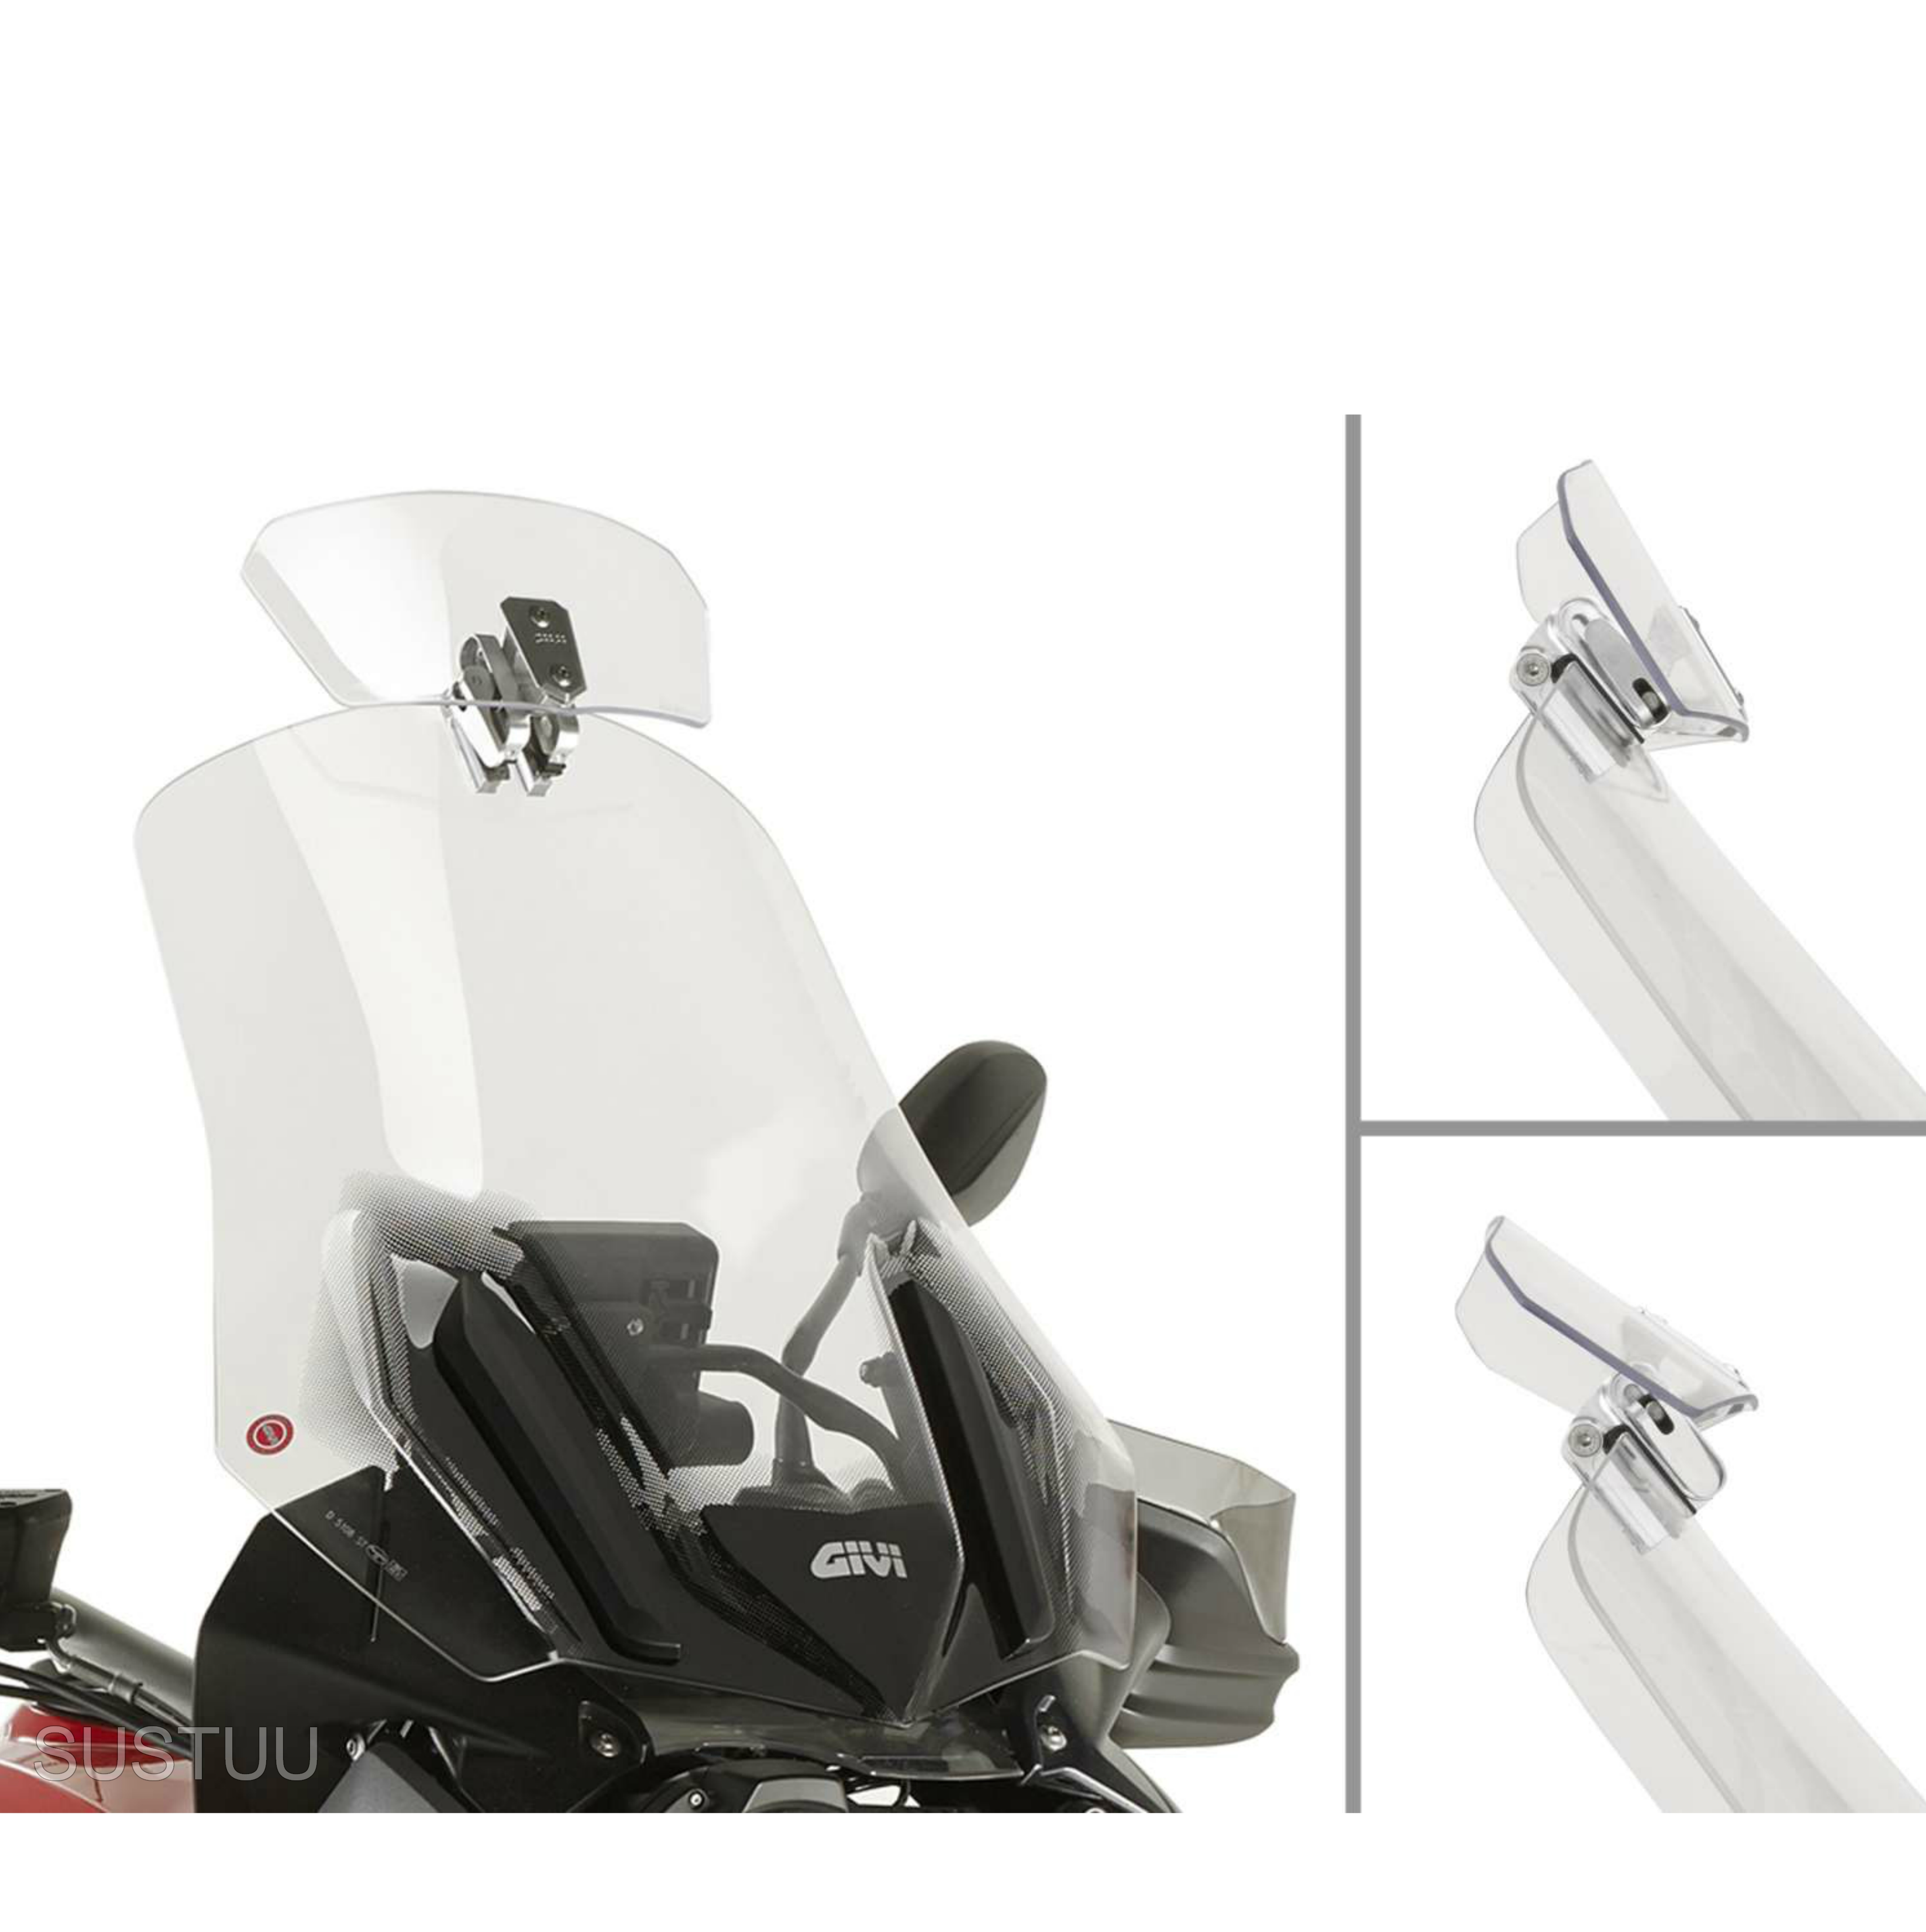 Givi S180T|Universal Transparent Spoiler|Motorcycle Wind Screen Deflector/Shield